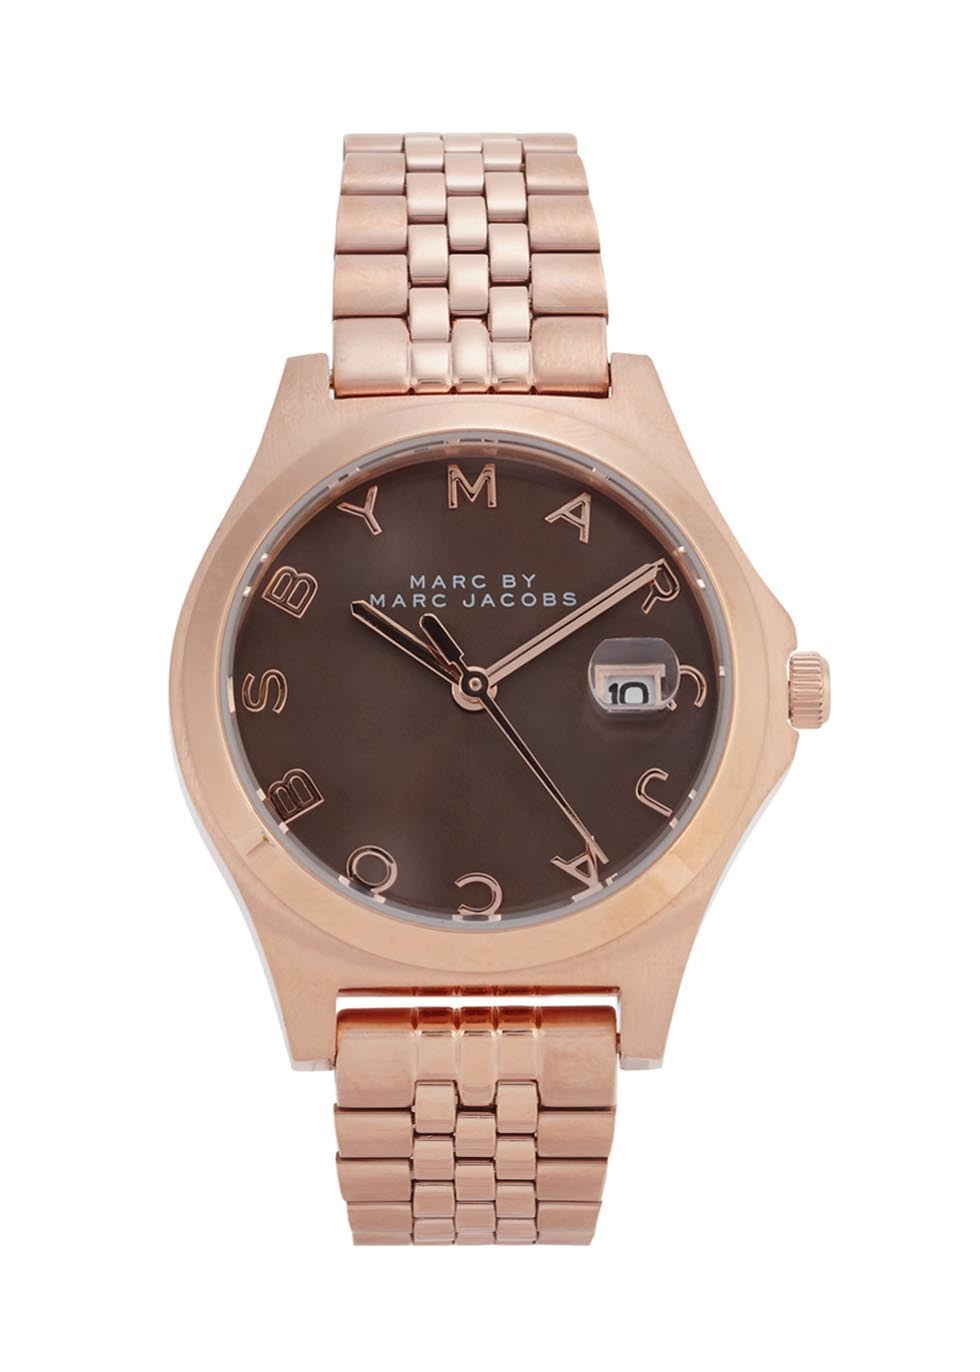 The Slim Rose Gold Tone Watch - predominant colour: gold; occasions: casual, creative work; style: boyfriend; size: large/oversized; material: chain/metal; finish: metallic; pattern: plain; embellishment: chain/metal; season: s/s 2016